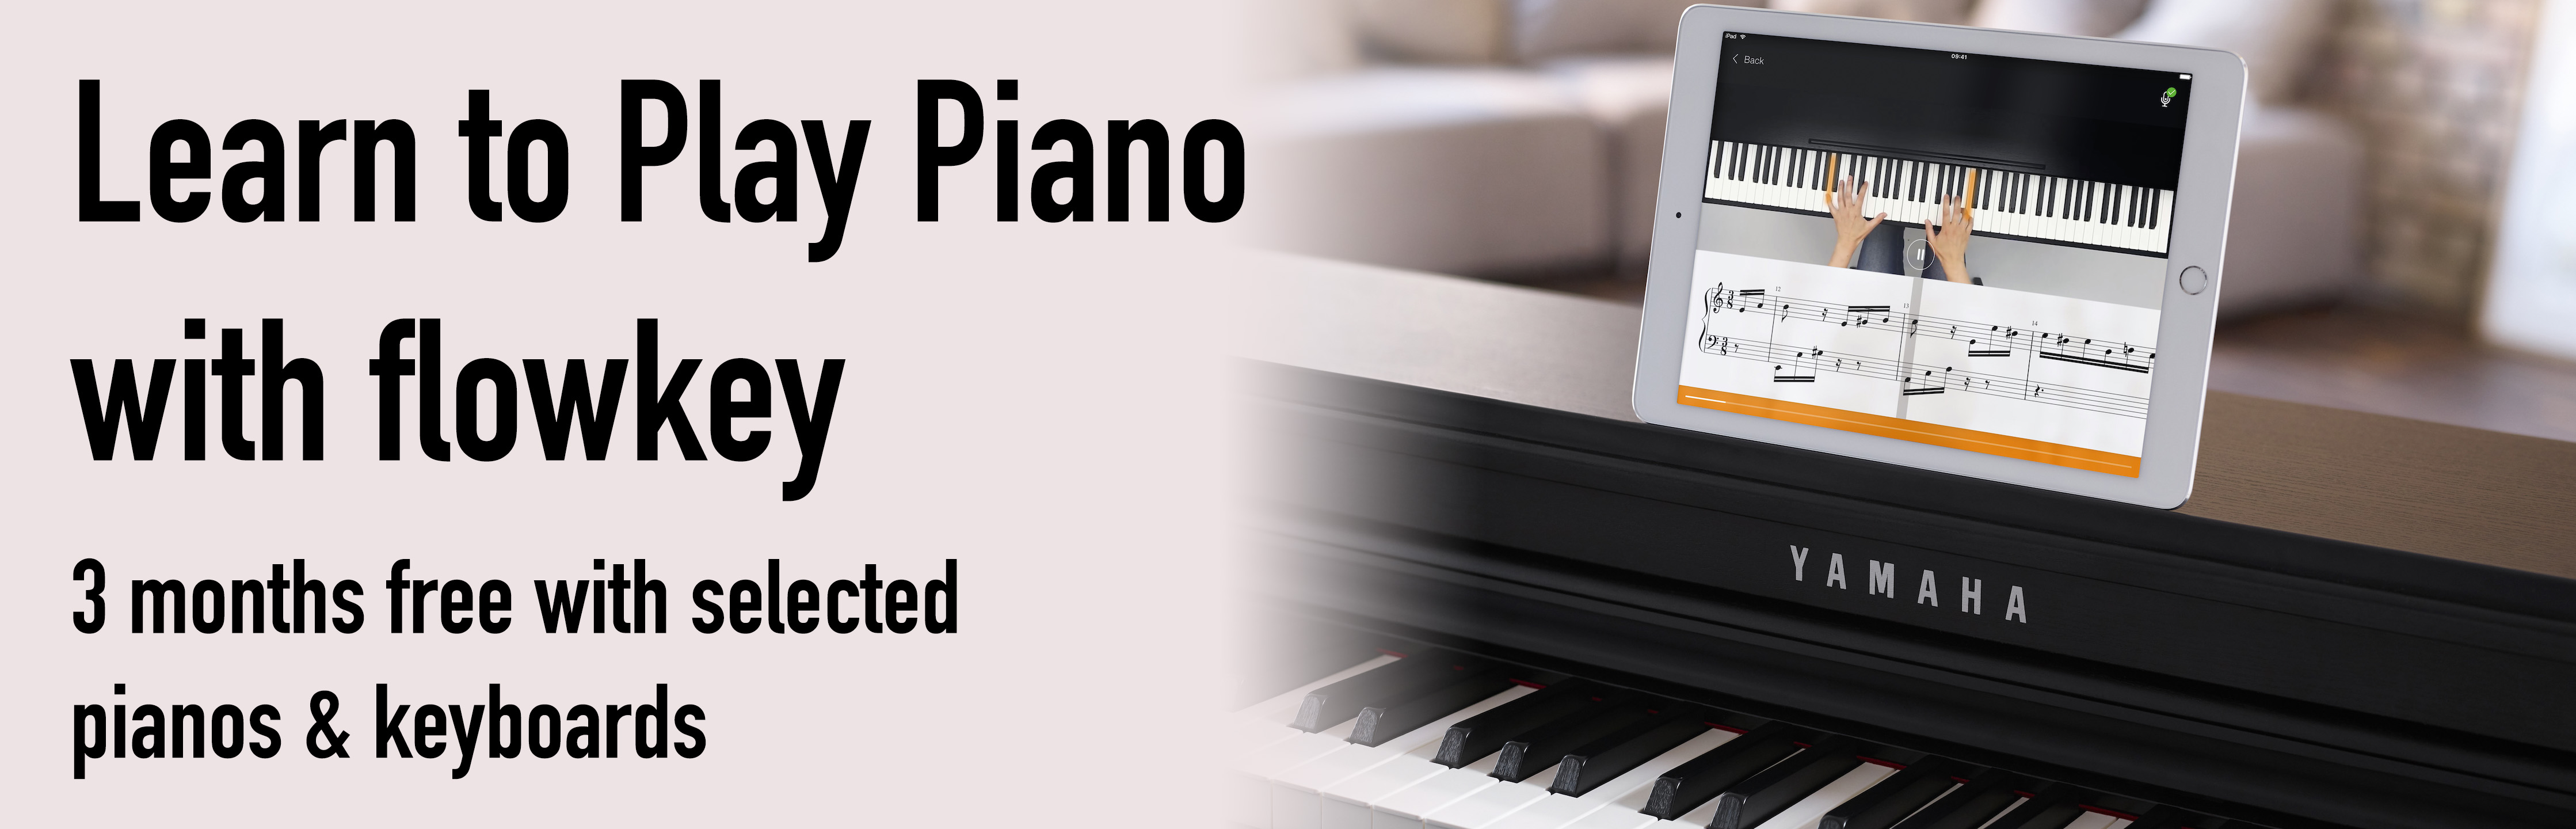 Learn to Play Piano with flowkey - 3 months free with selected pianos and keyboards